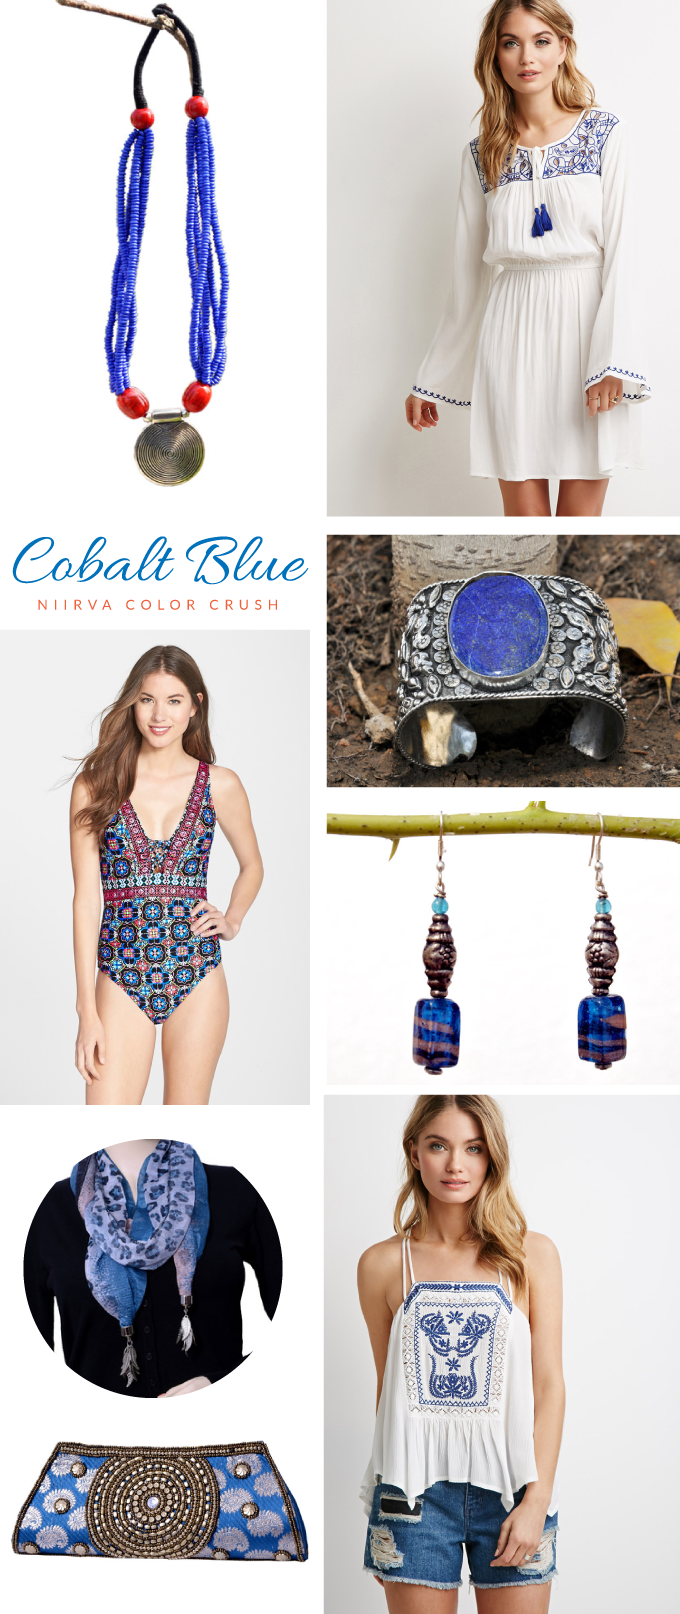 Niirva-Color-Crush-Cobalt-Blue-Accessories